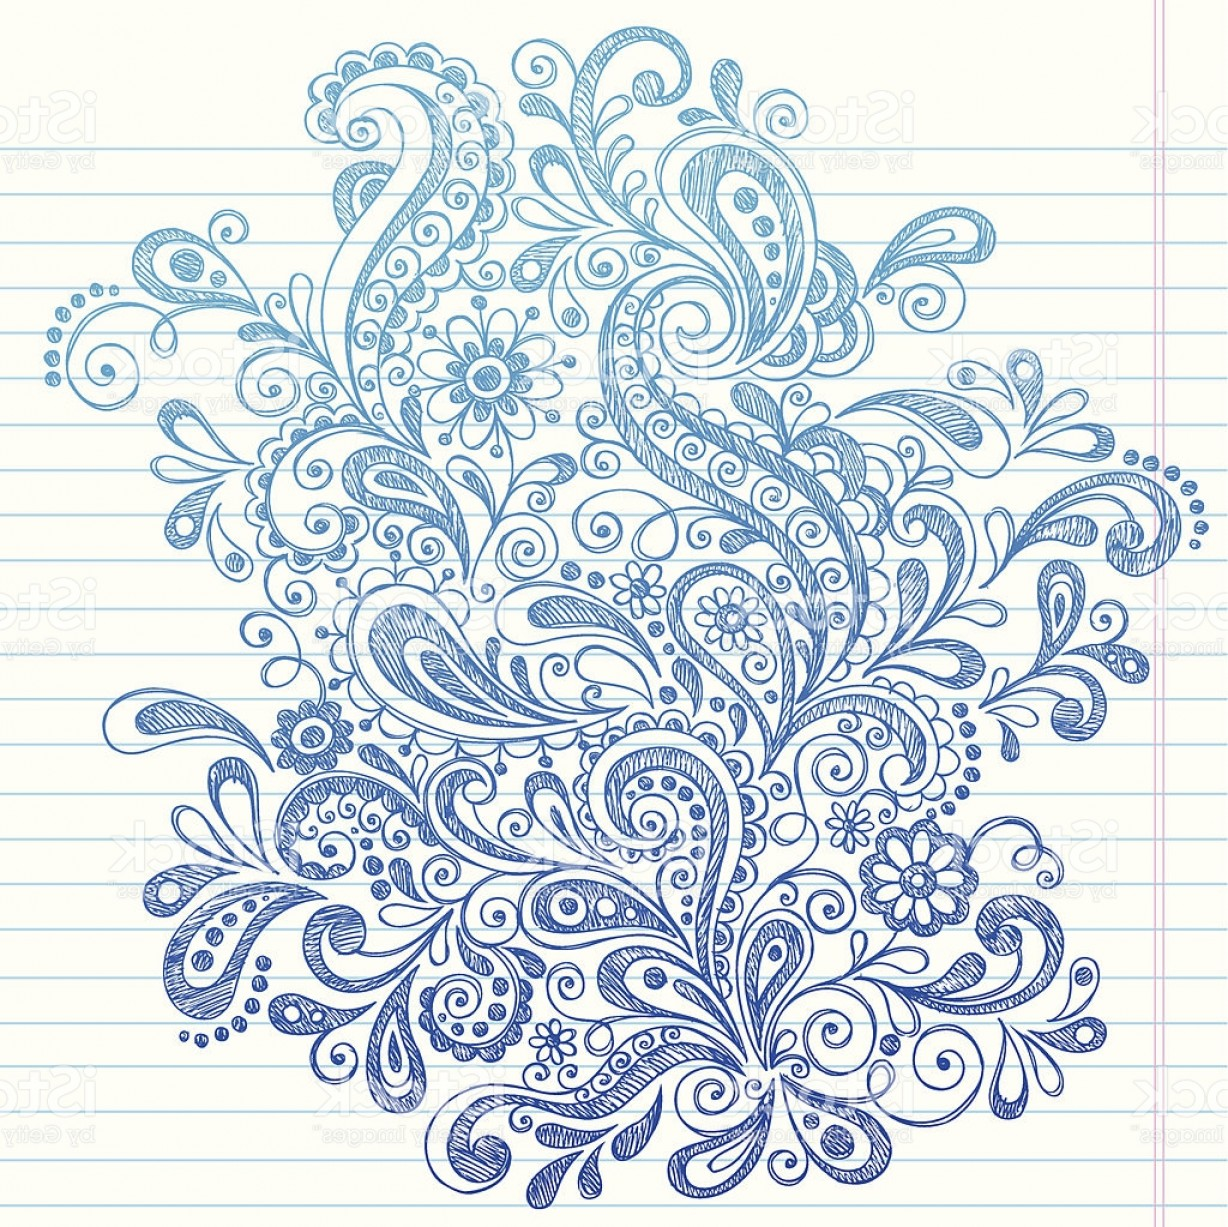 Paisley Swirl Flower Vector: Hand Drawn Sketchy Paisley And Swirls Doodle Gm